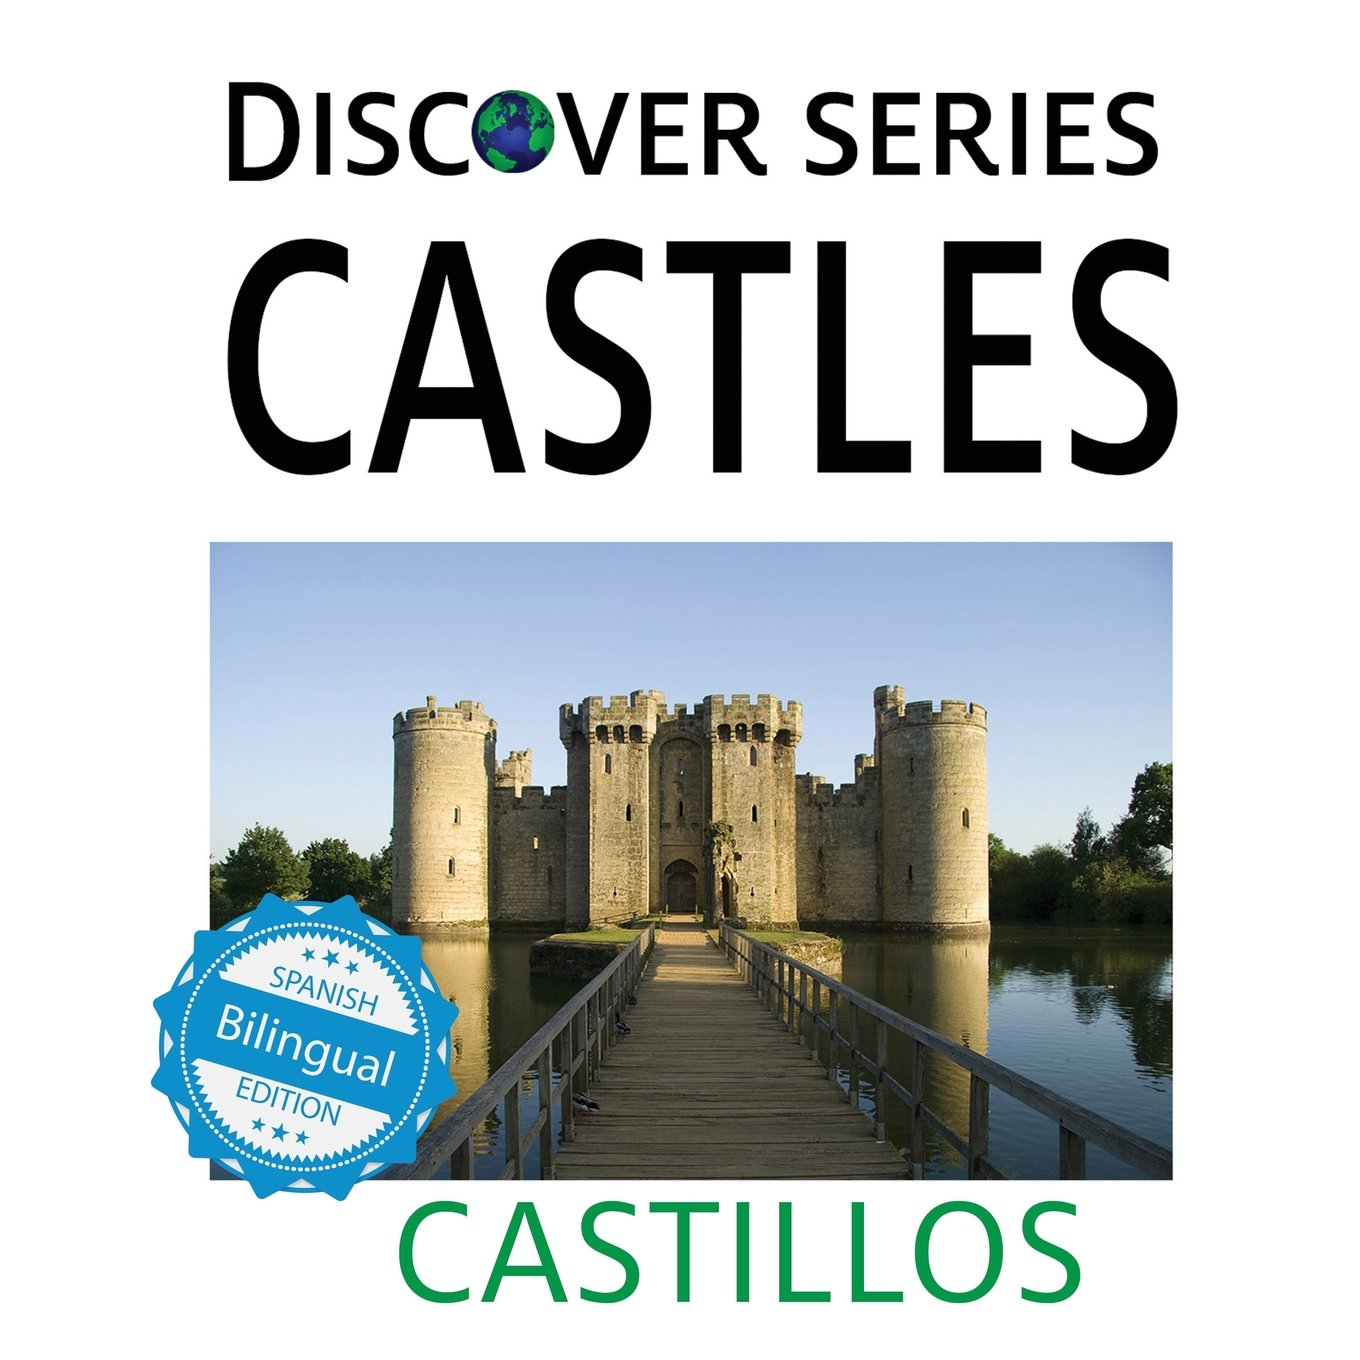 Castles / Castillos Xist Kids Bilingual Spanish English: Amazon.es: Xist Publishing, Victor Santana: Libros en idiomas extranjeros